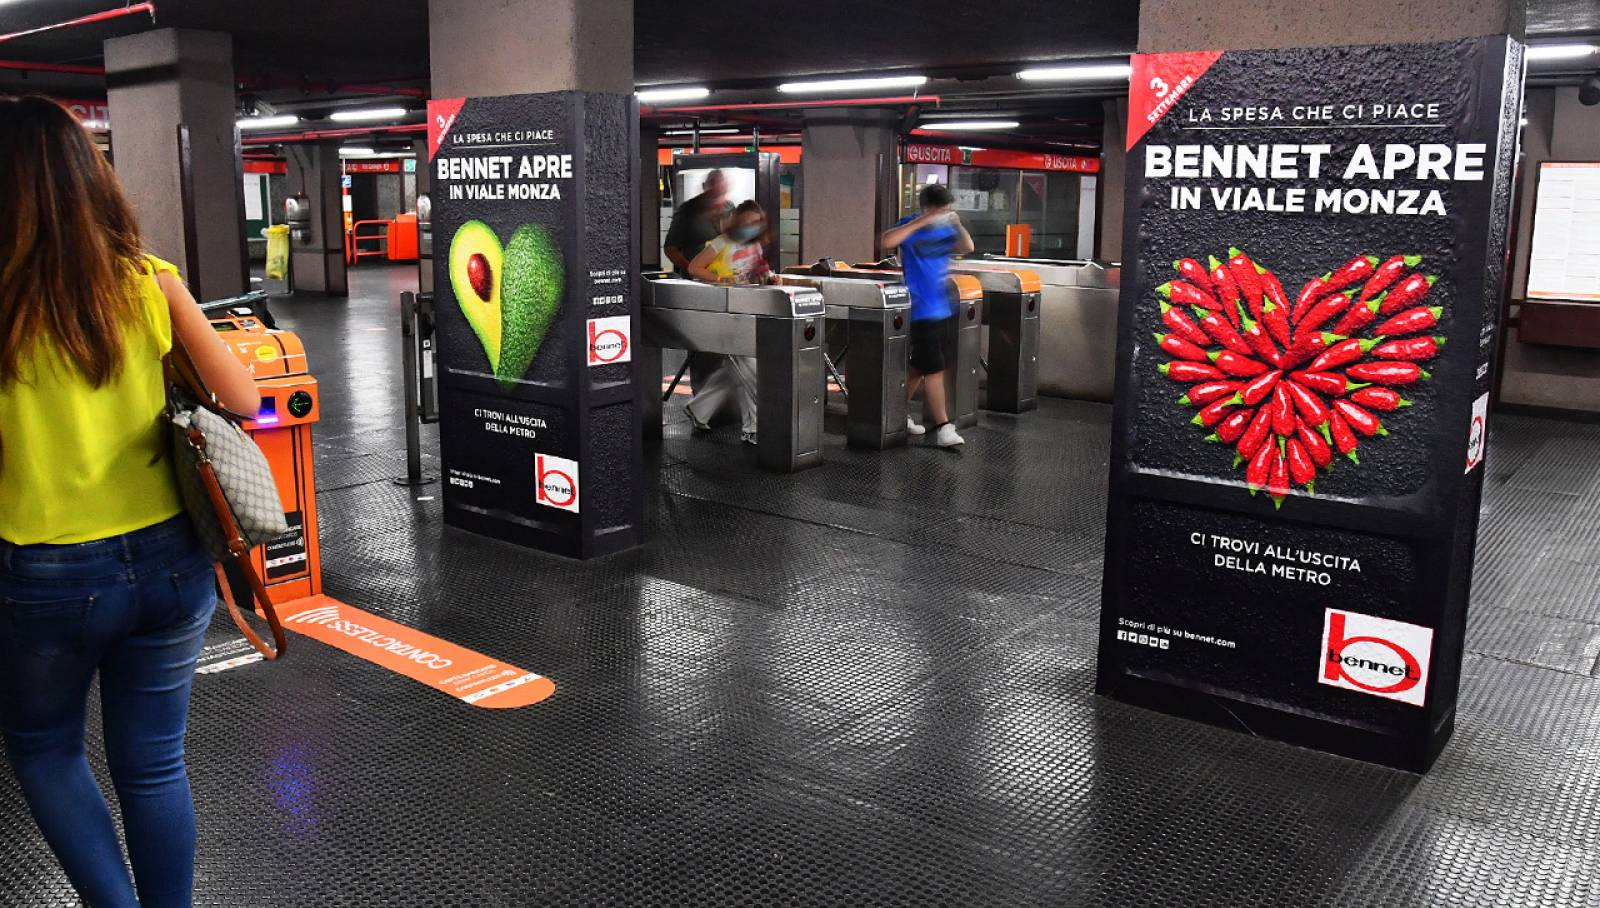 OOH IGPDecaux Milano Station Domination per Bennet